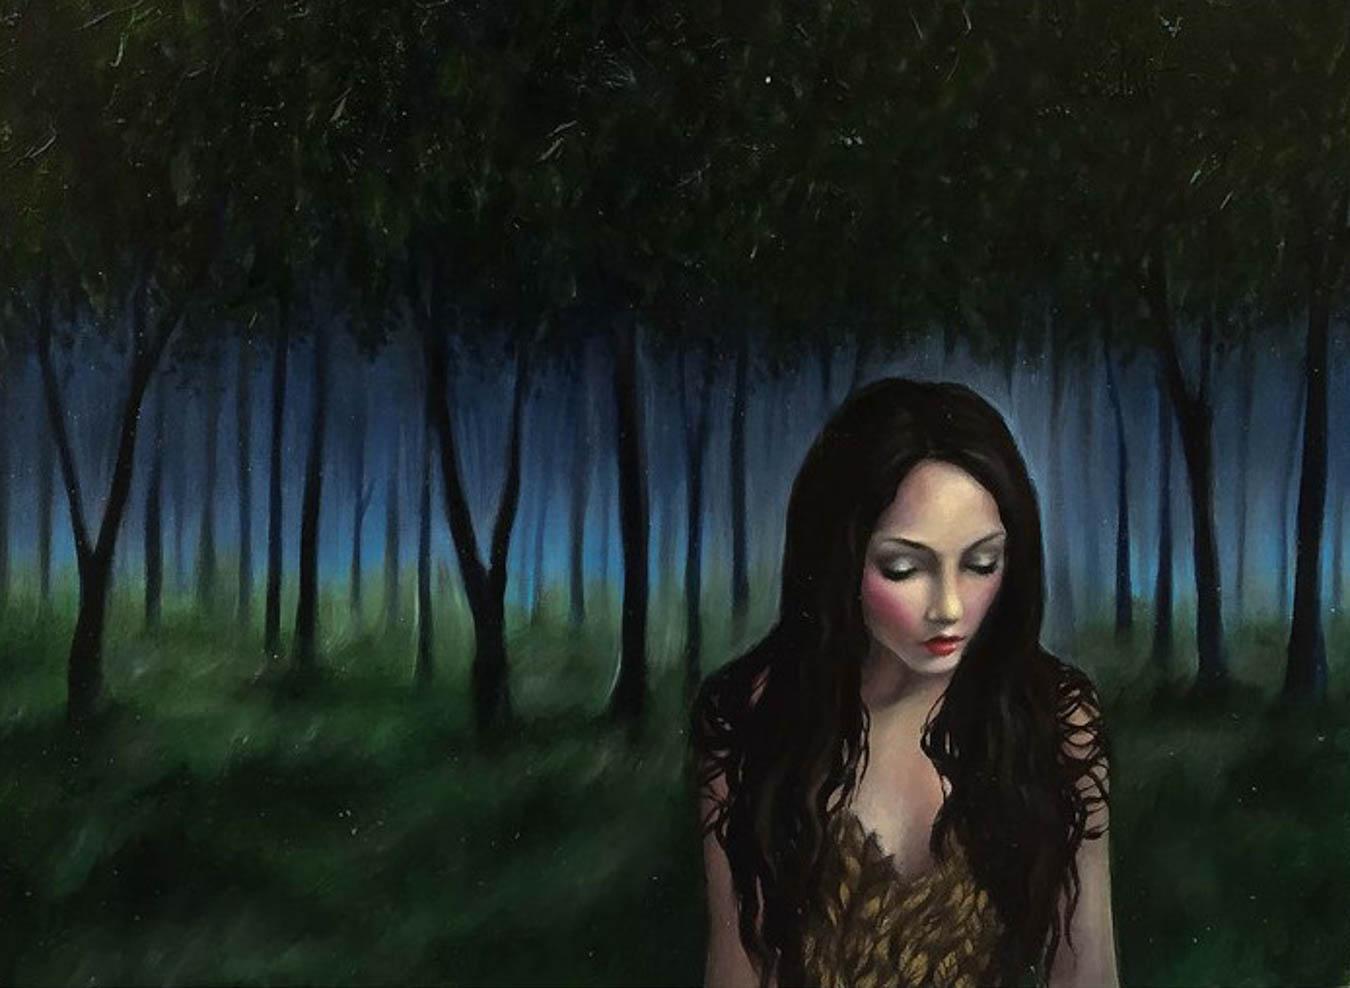 Oil painting of illuminated woman with dark trees in the background.